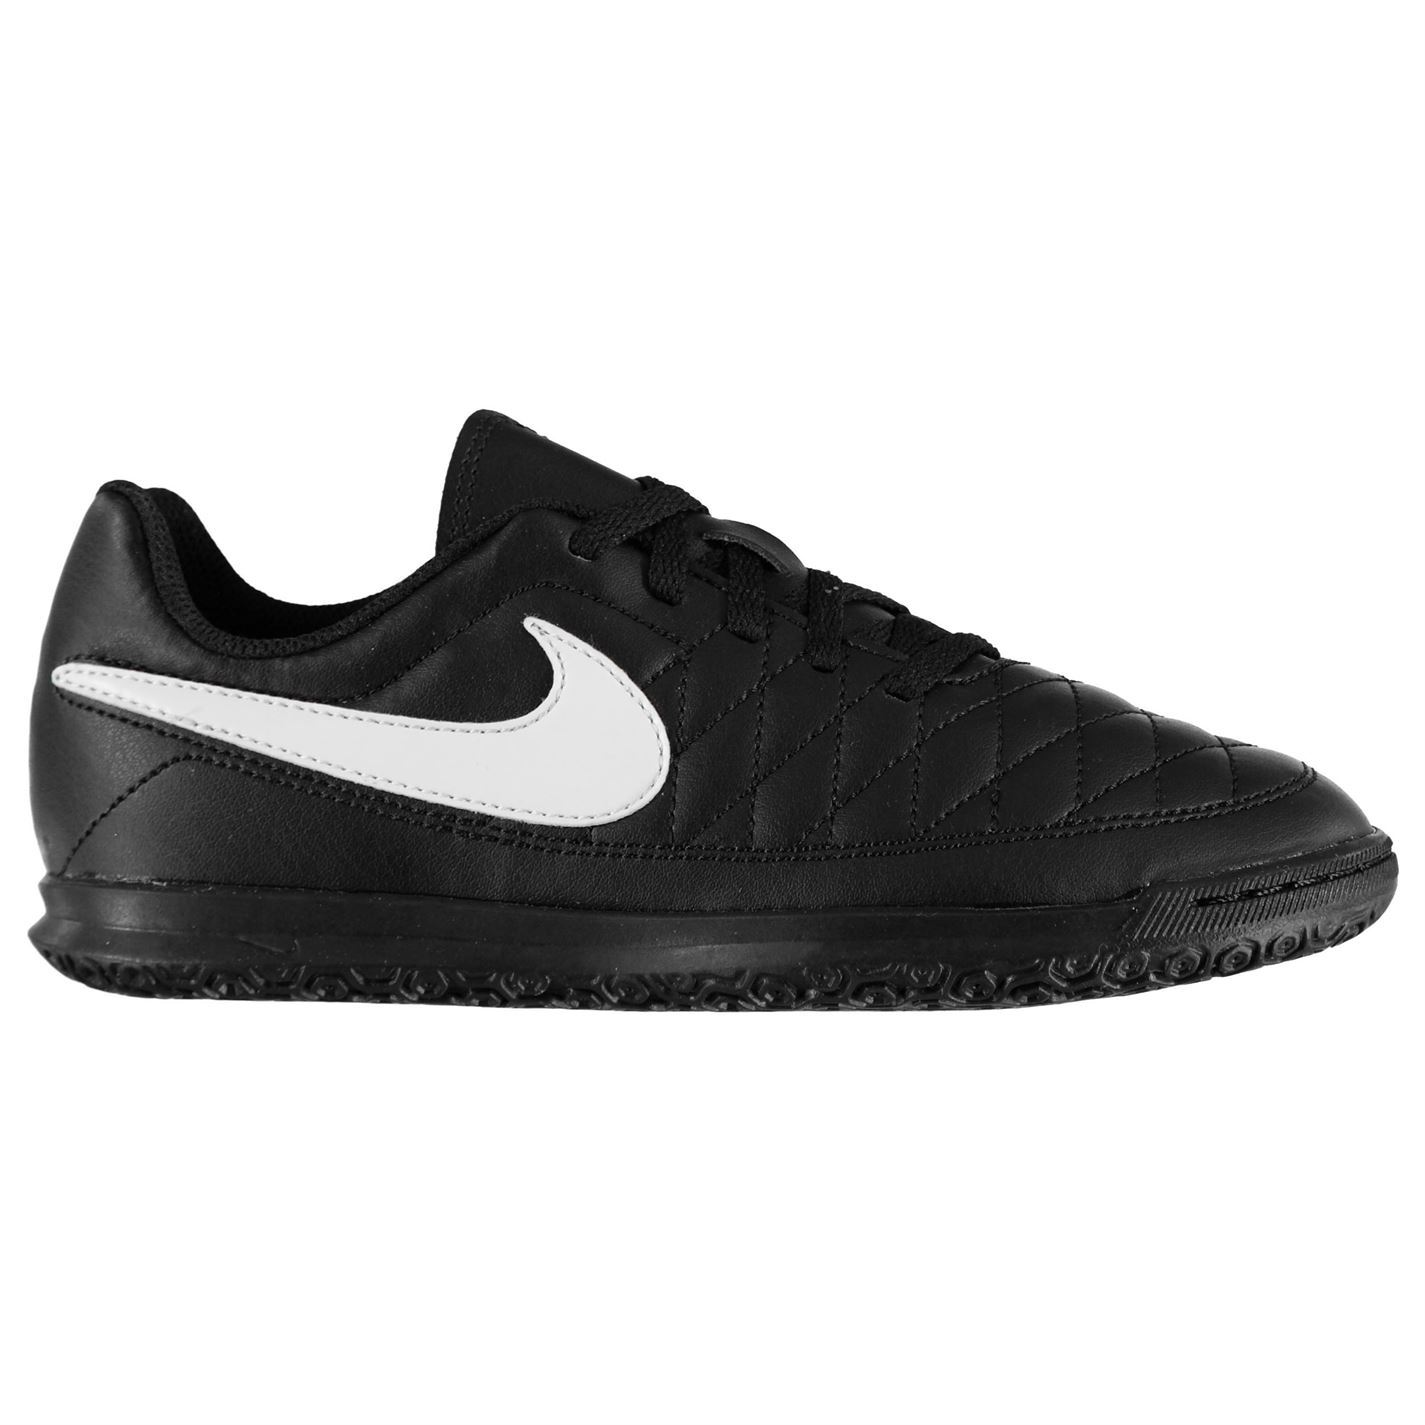 Nike-majestry-Indoor-Court-Football-formateurs-juniors-Football-Baskets-Chaussures miniature 8